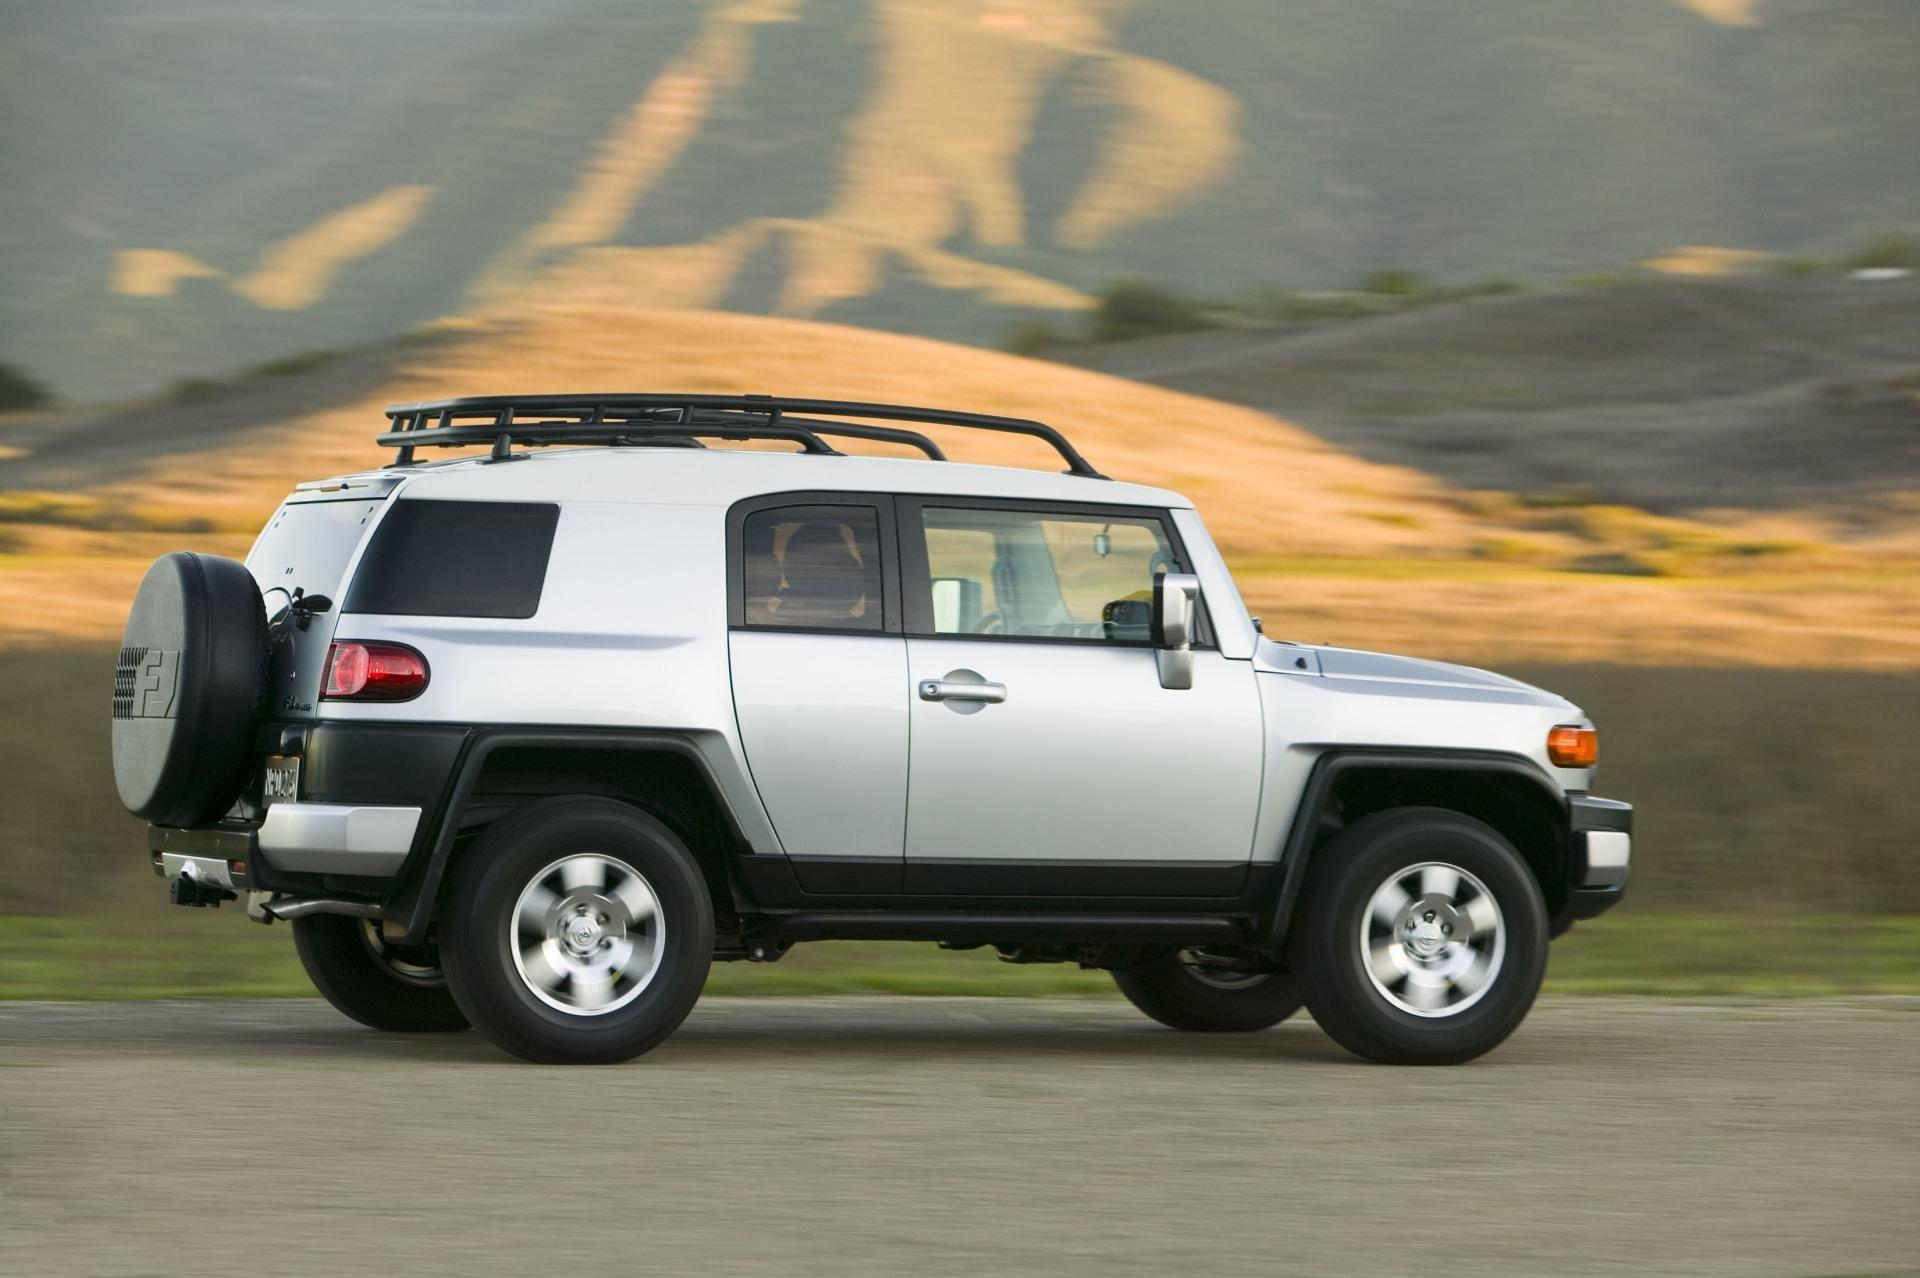 2010 toyota fj cruiser. Black Bedroom Furniture Sets. Home Design Ideas